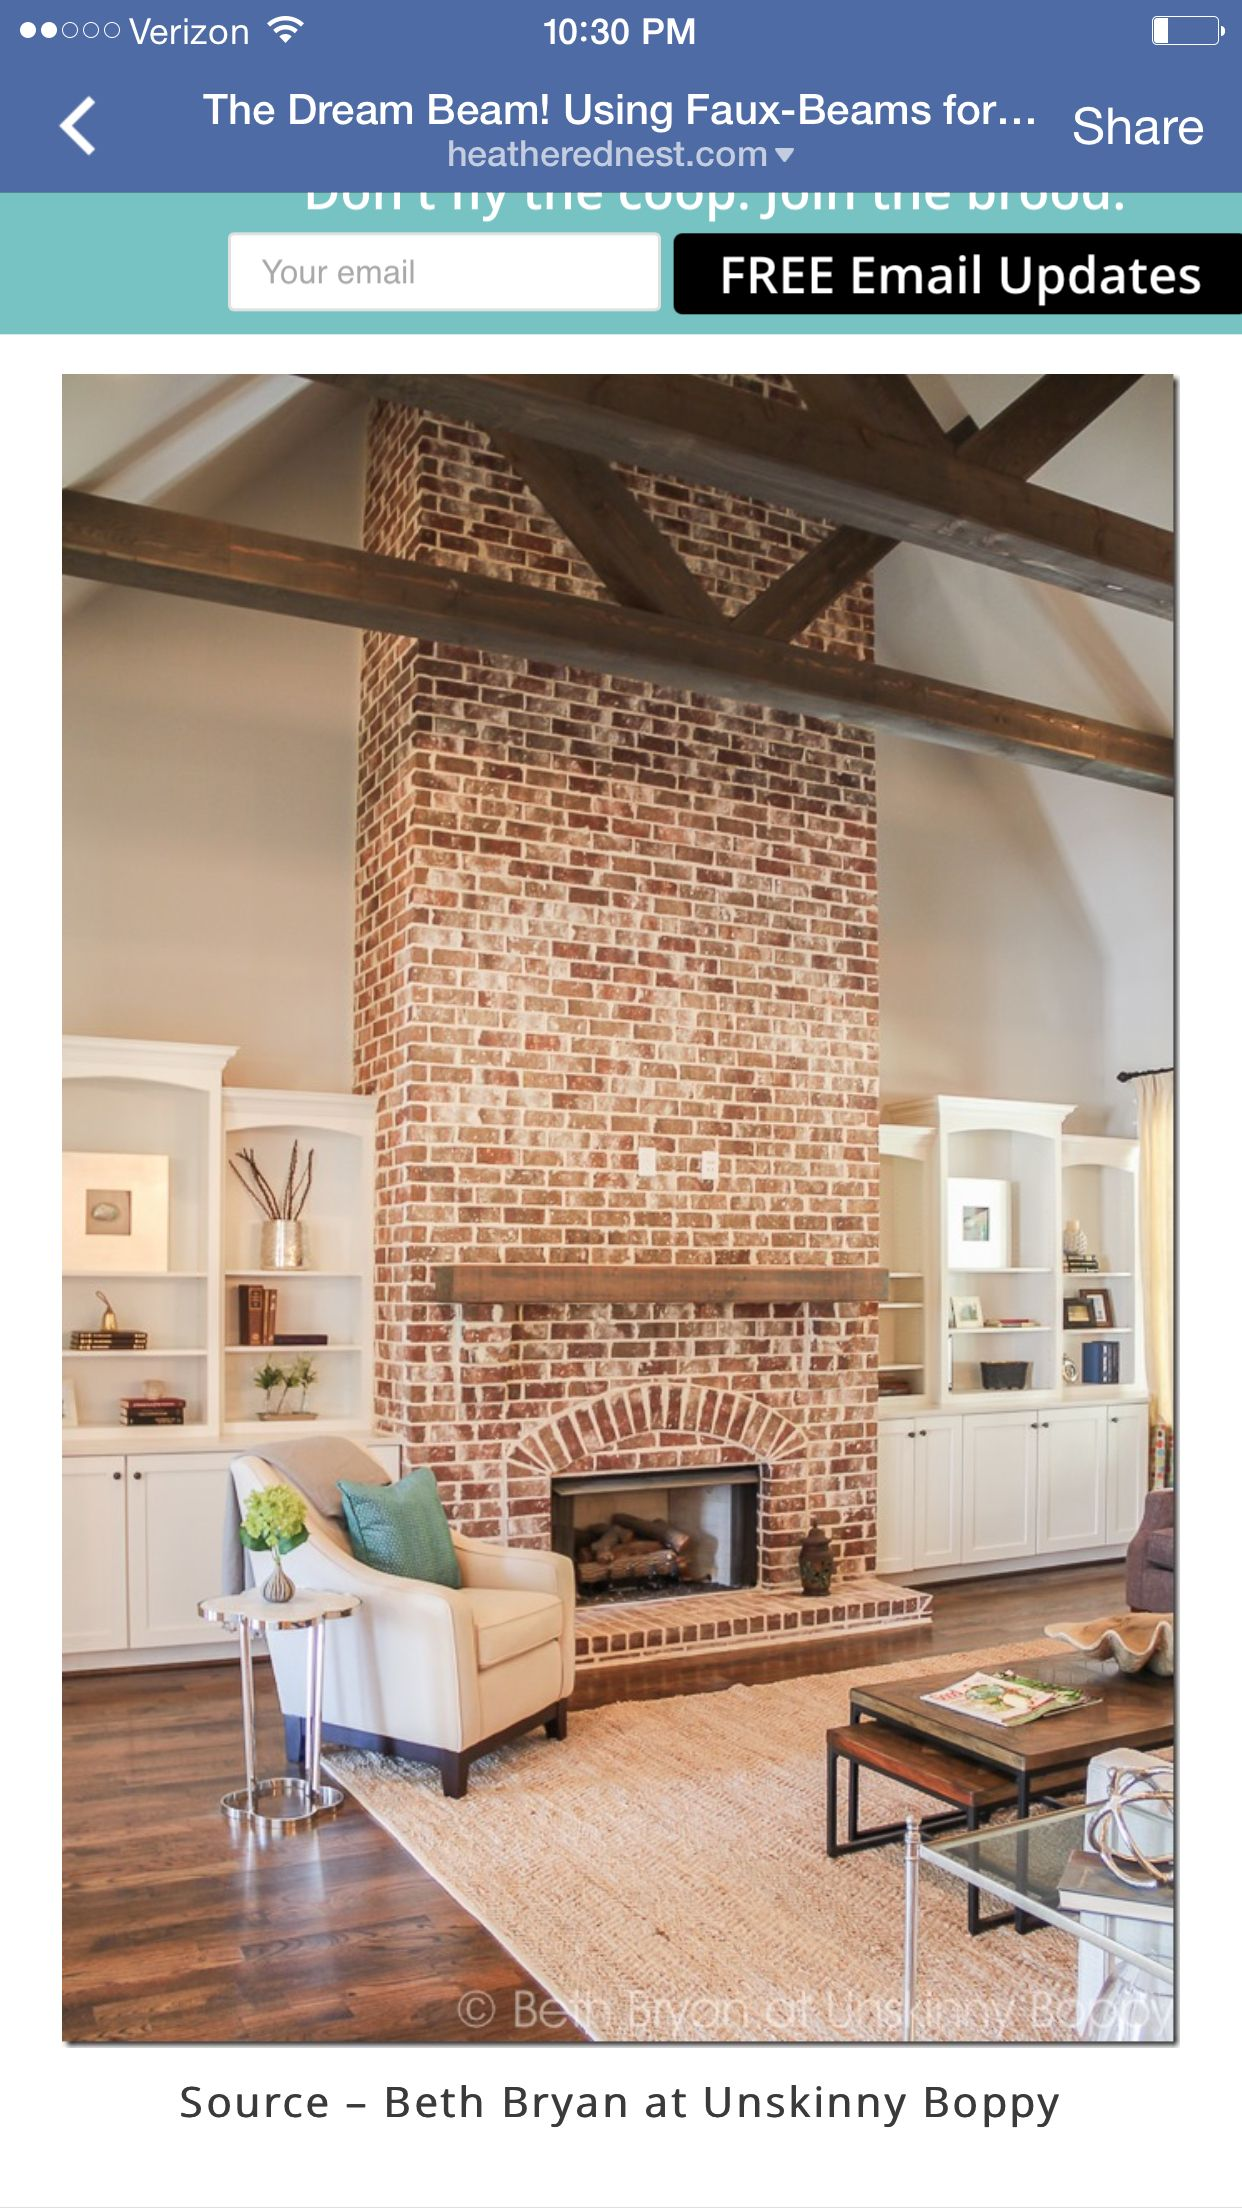 Fireplace in vaulted ceiling with wooden beams